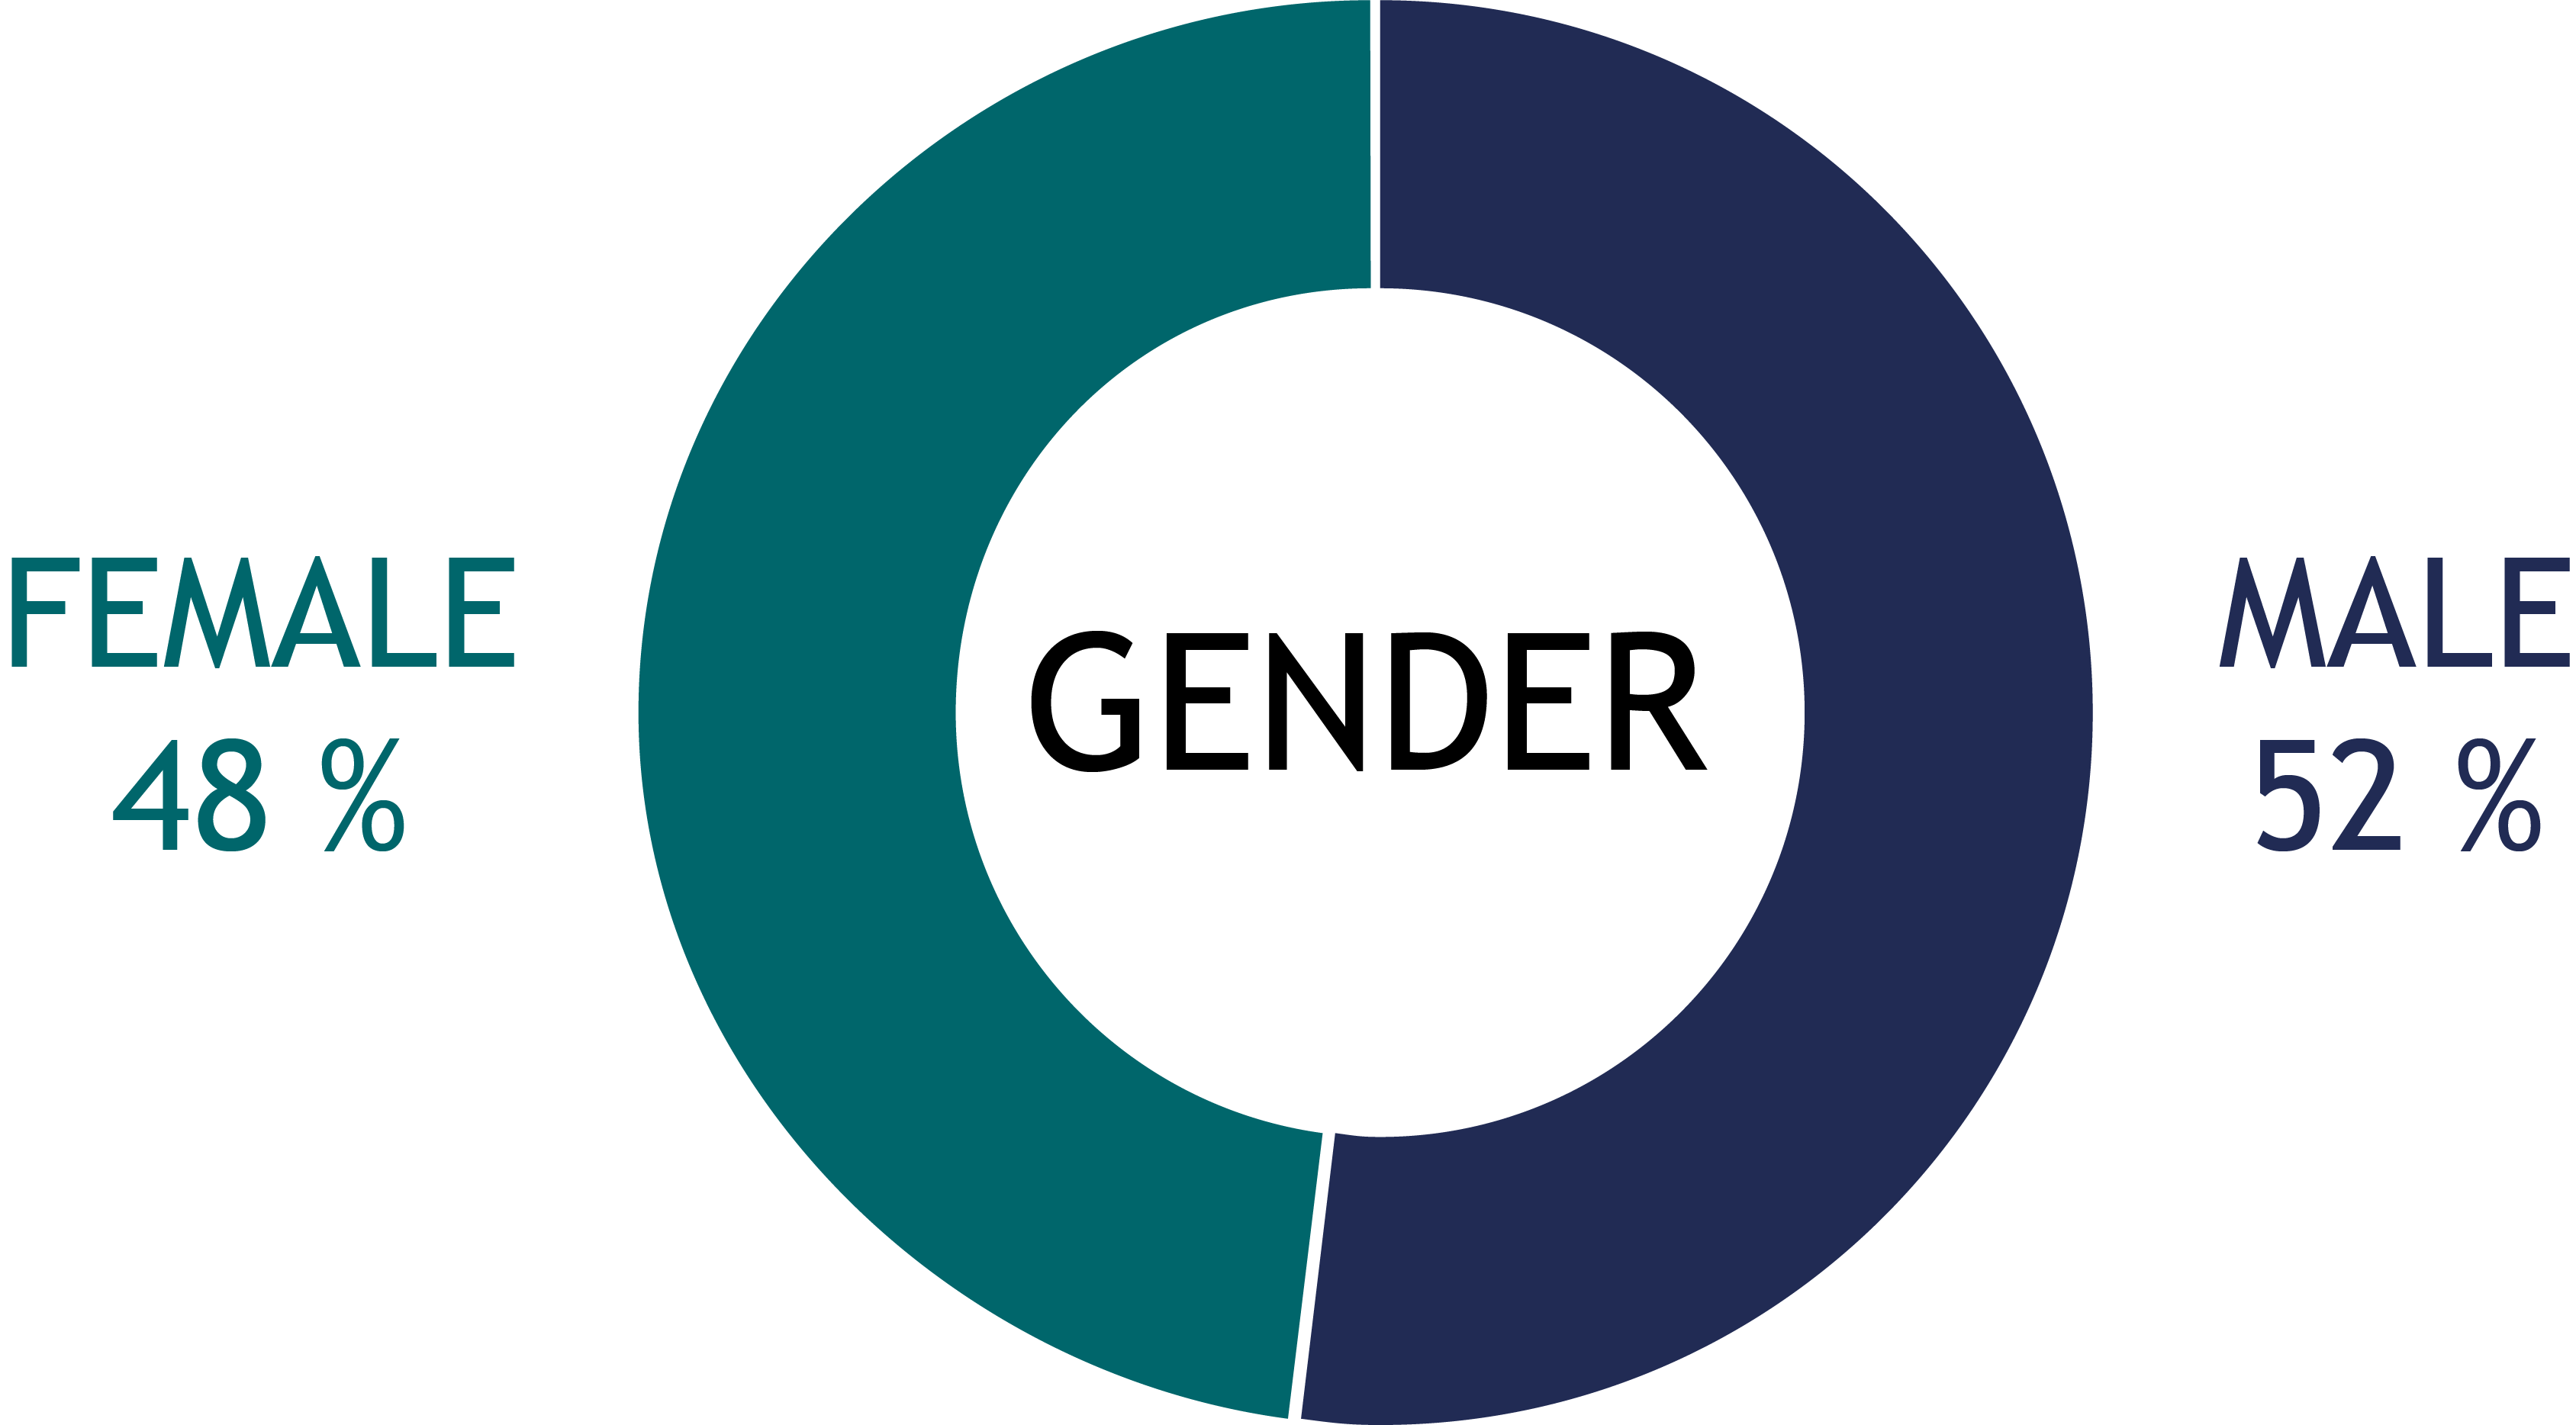 Male-Female-Pie-Chart